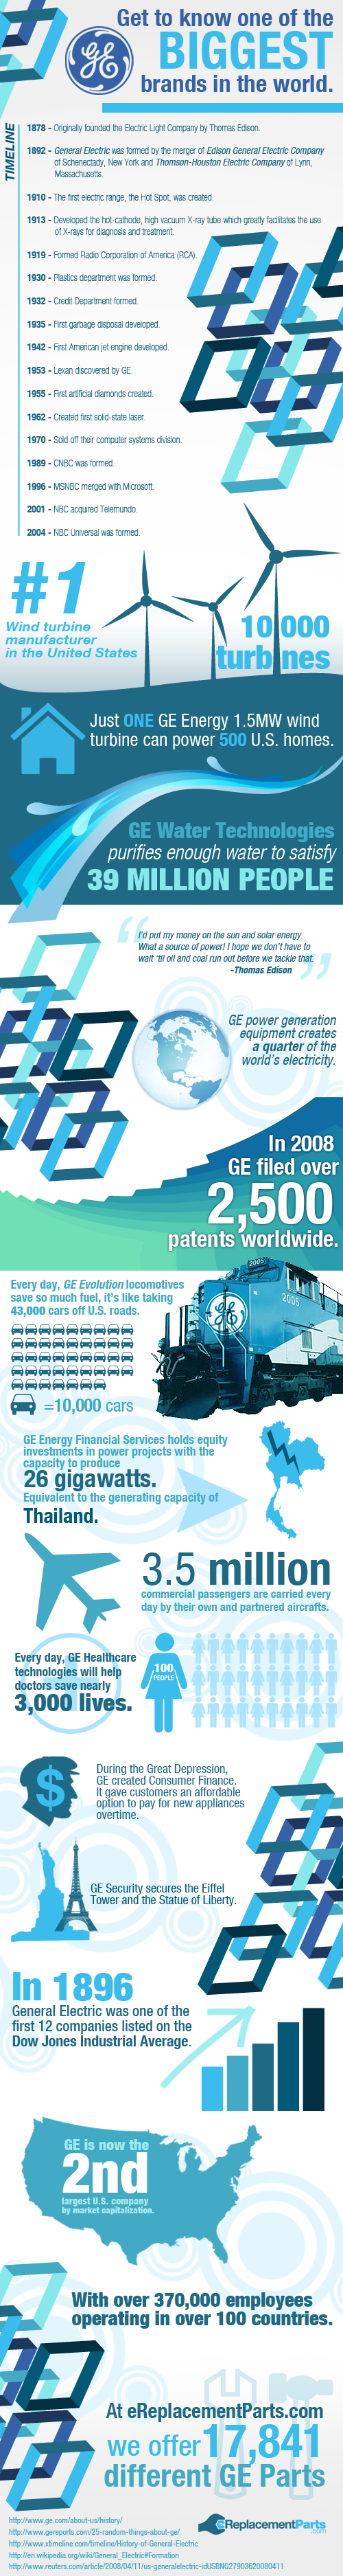 GE: The Biggest Brand in the World